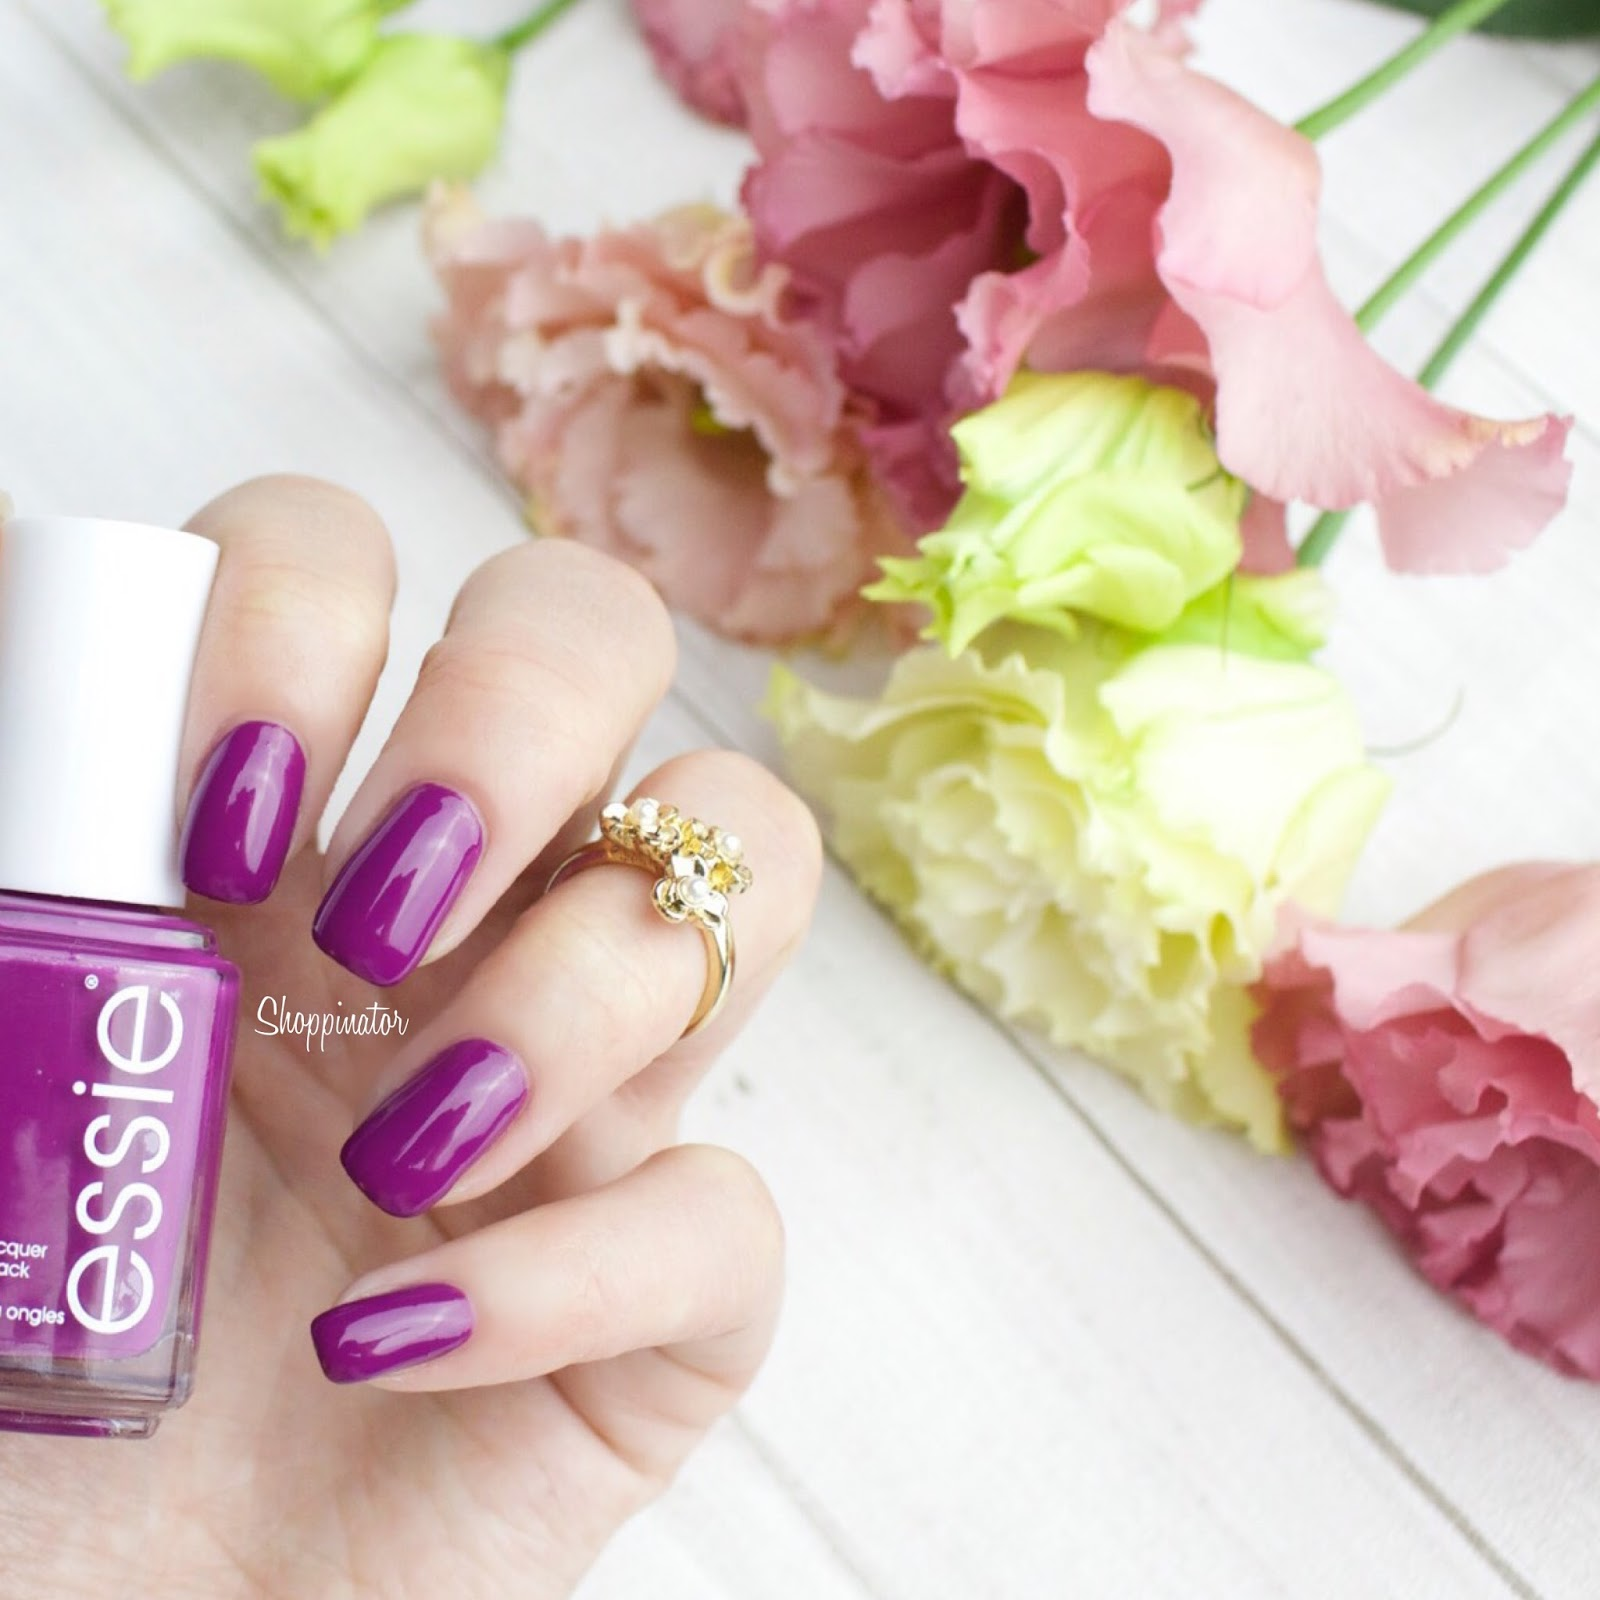 essie-spring-le-frühling-swatches-swatch-review-flowerista-lila-flowers-nagellack-nailpolish-limitiert-notd-nailoftheday